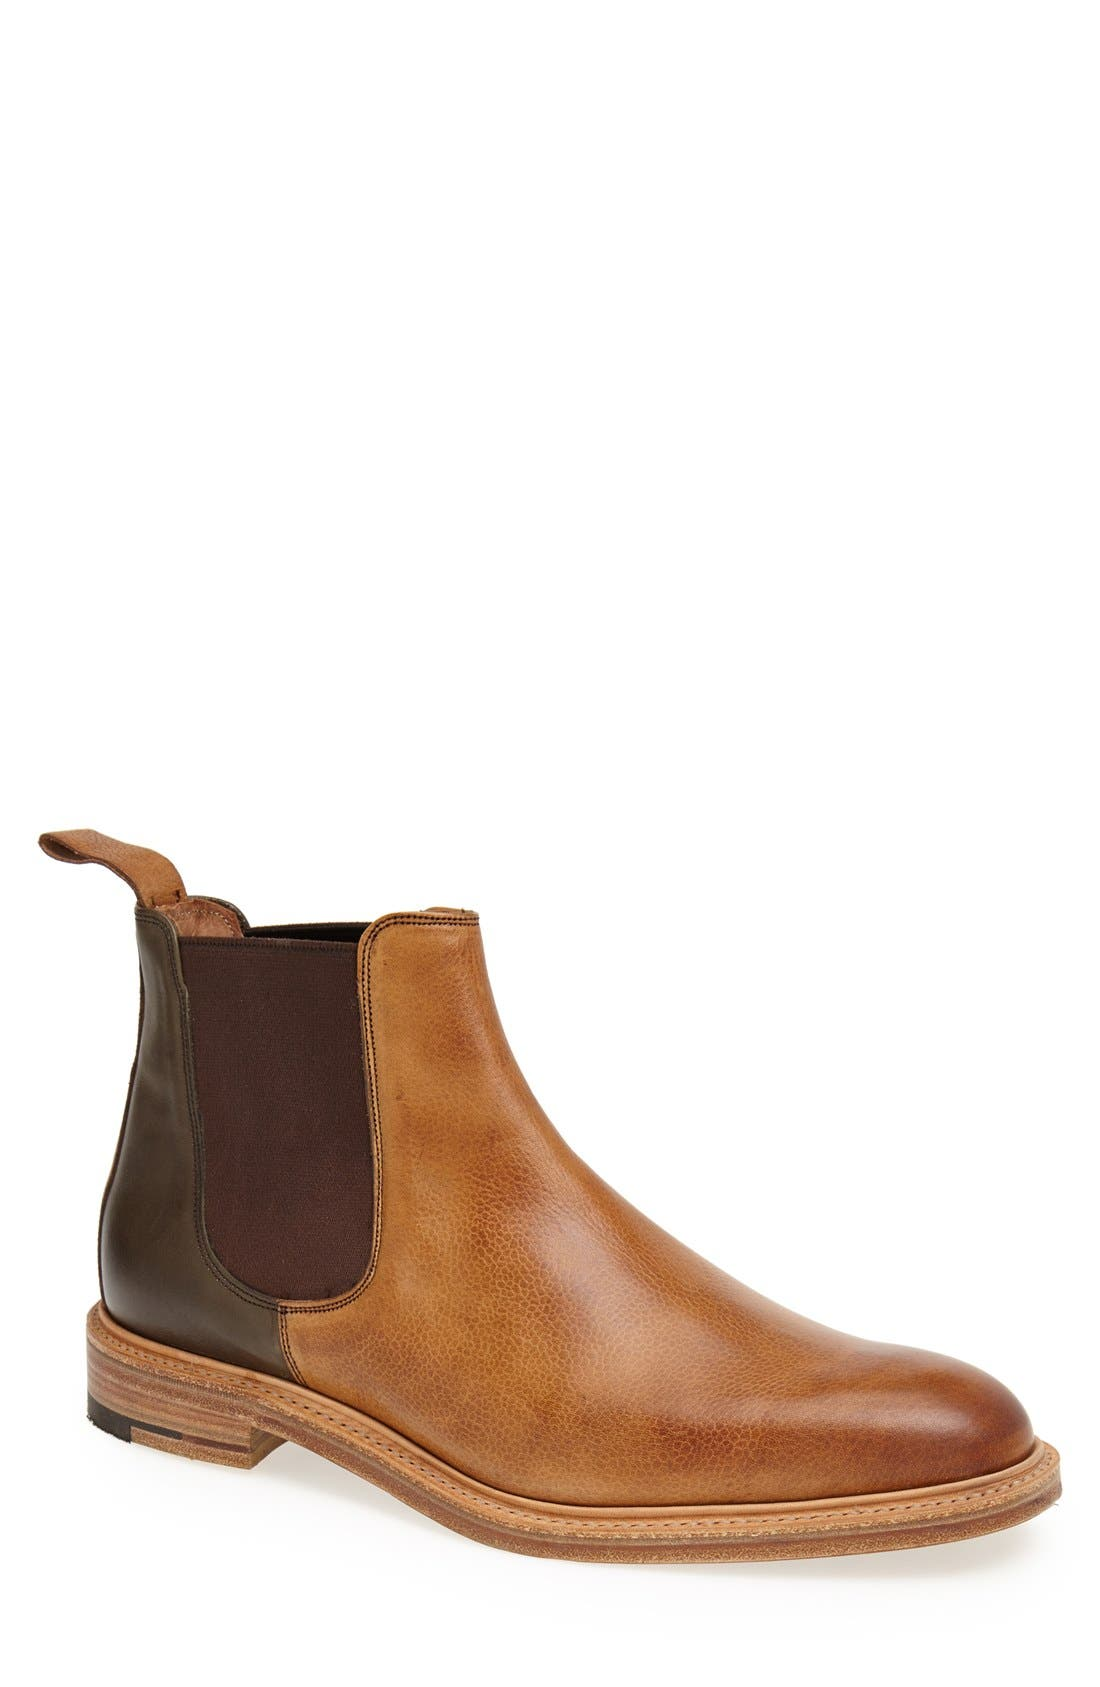 Main Image - Northern Cobbler Chelsea Boot (Men)